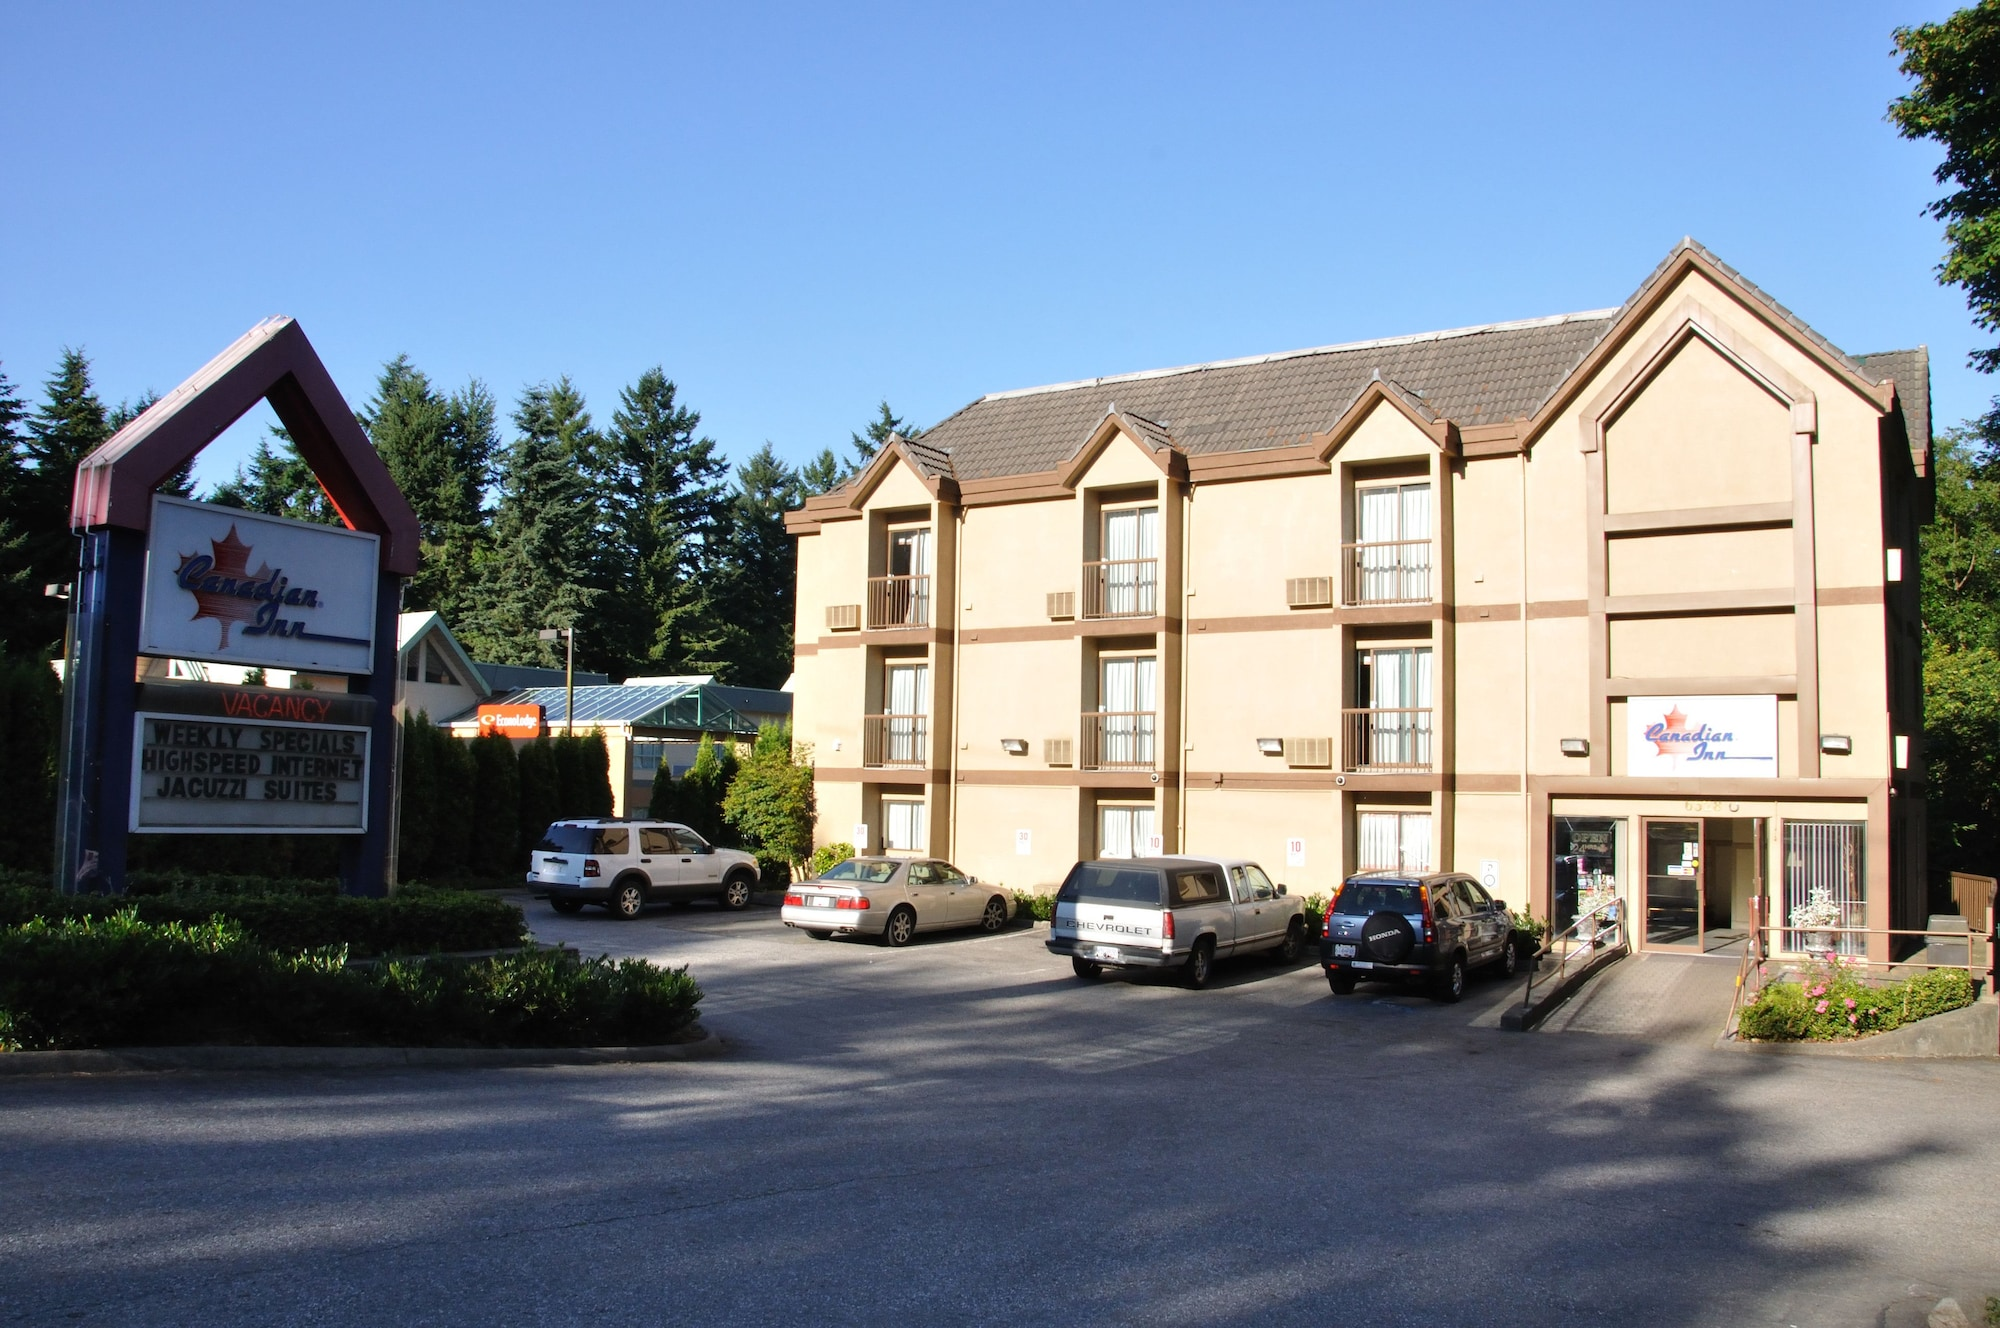 Canadian Inn, Greater Vancouver